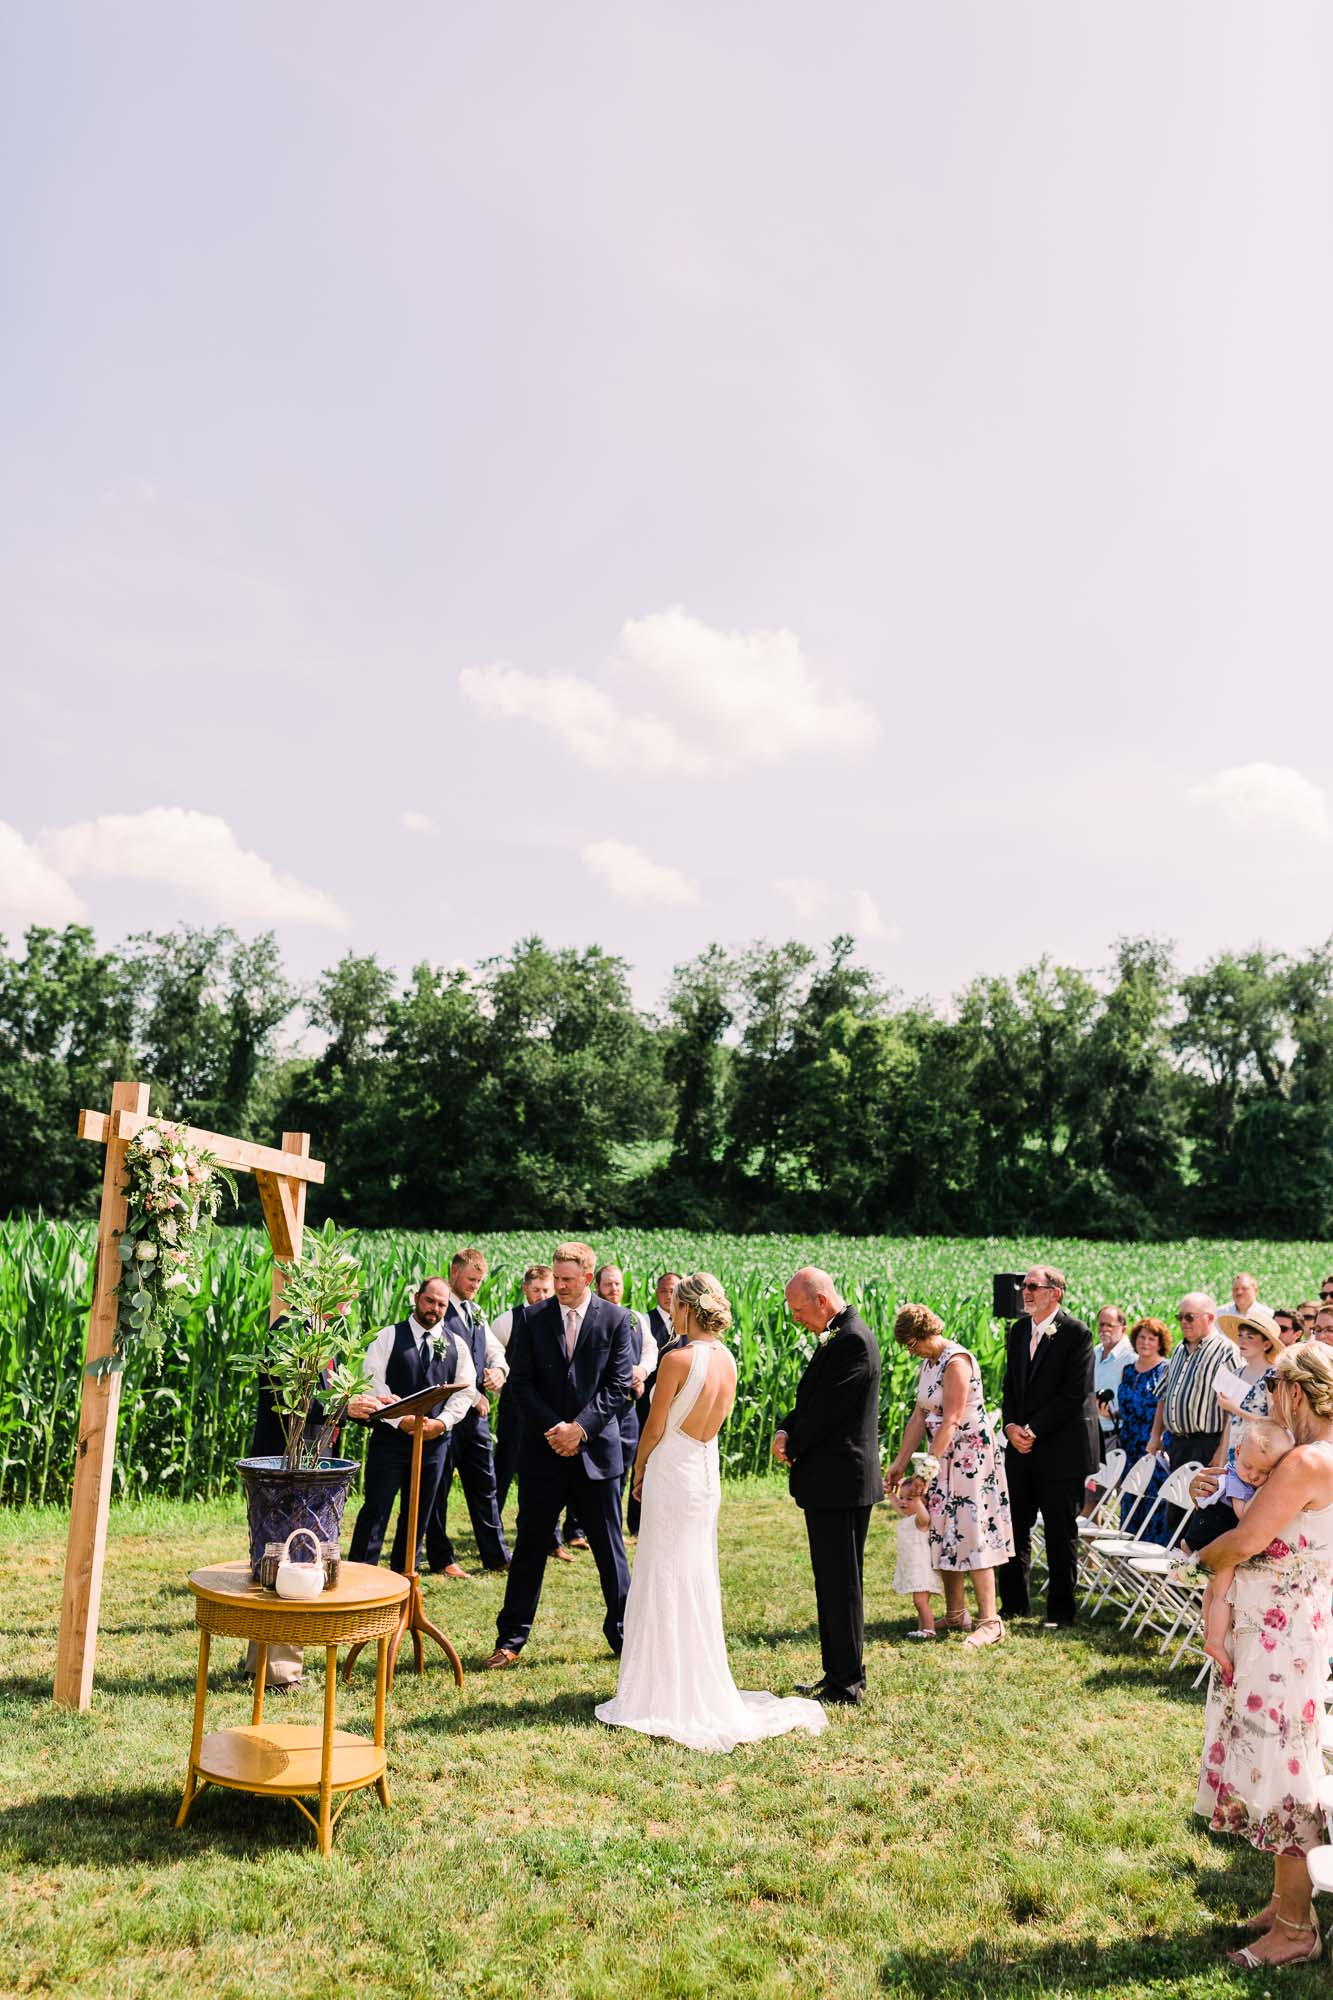 Muncy-backyard-farm-wedding-7803.jpg